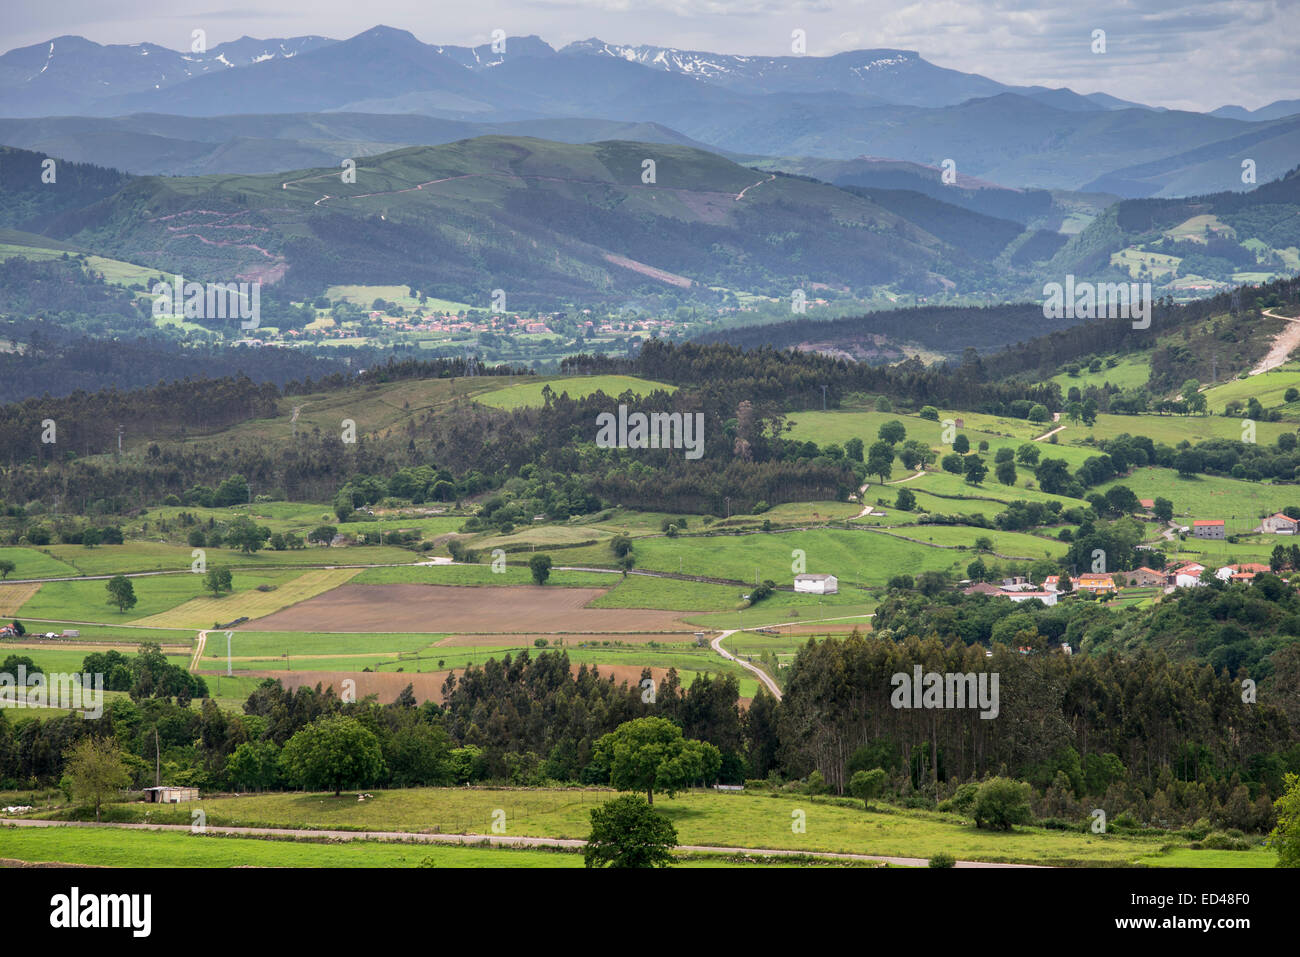 Panoramic views of Picos de Europa from Comillas area, Cantabria, Spain - Stock Image